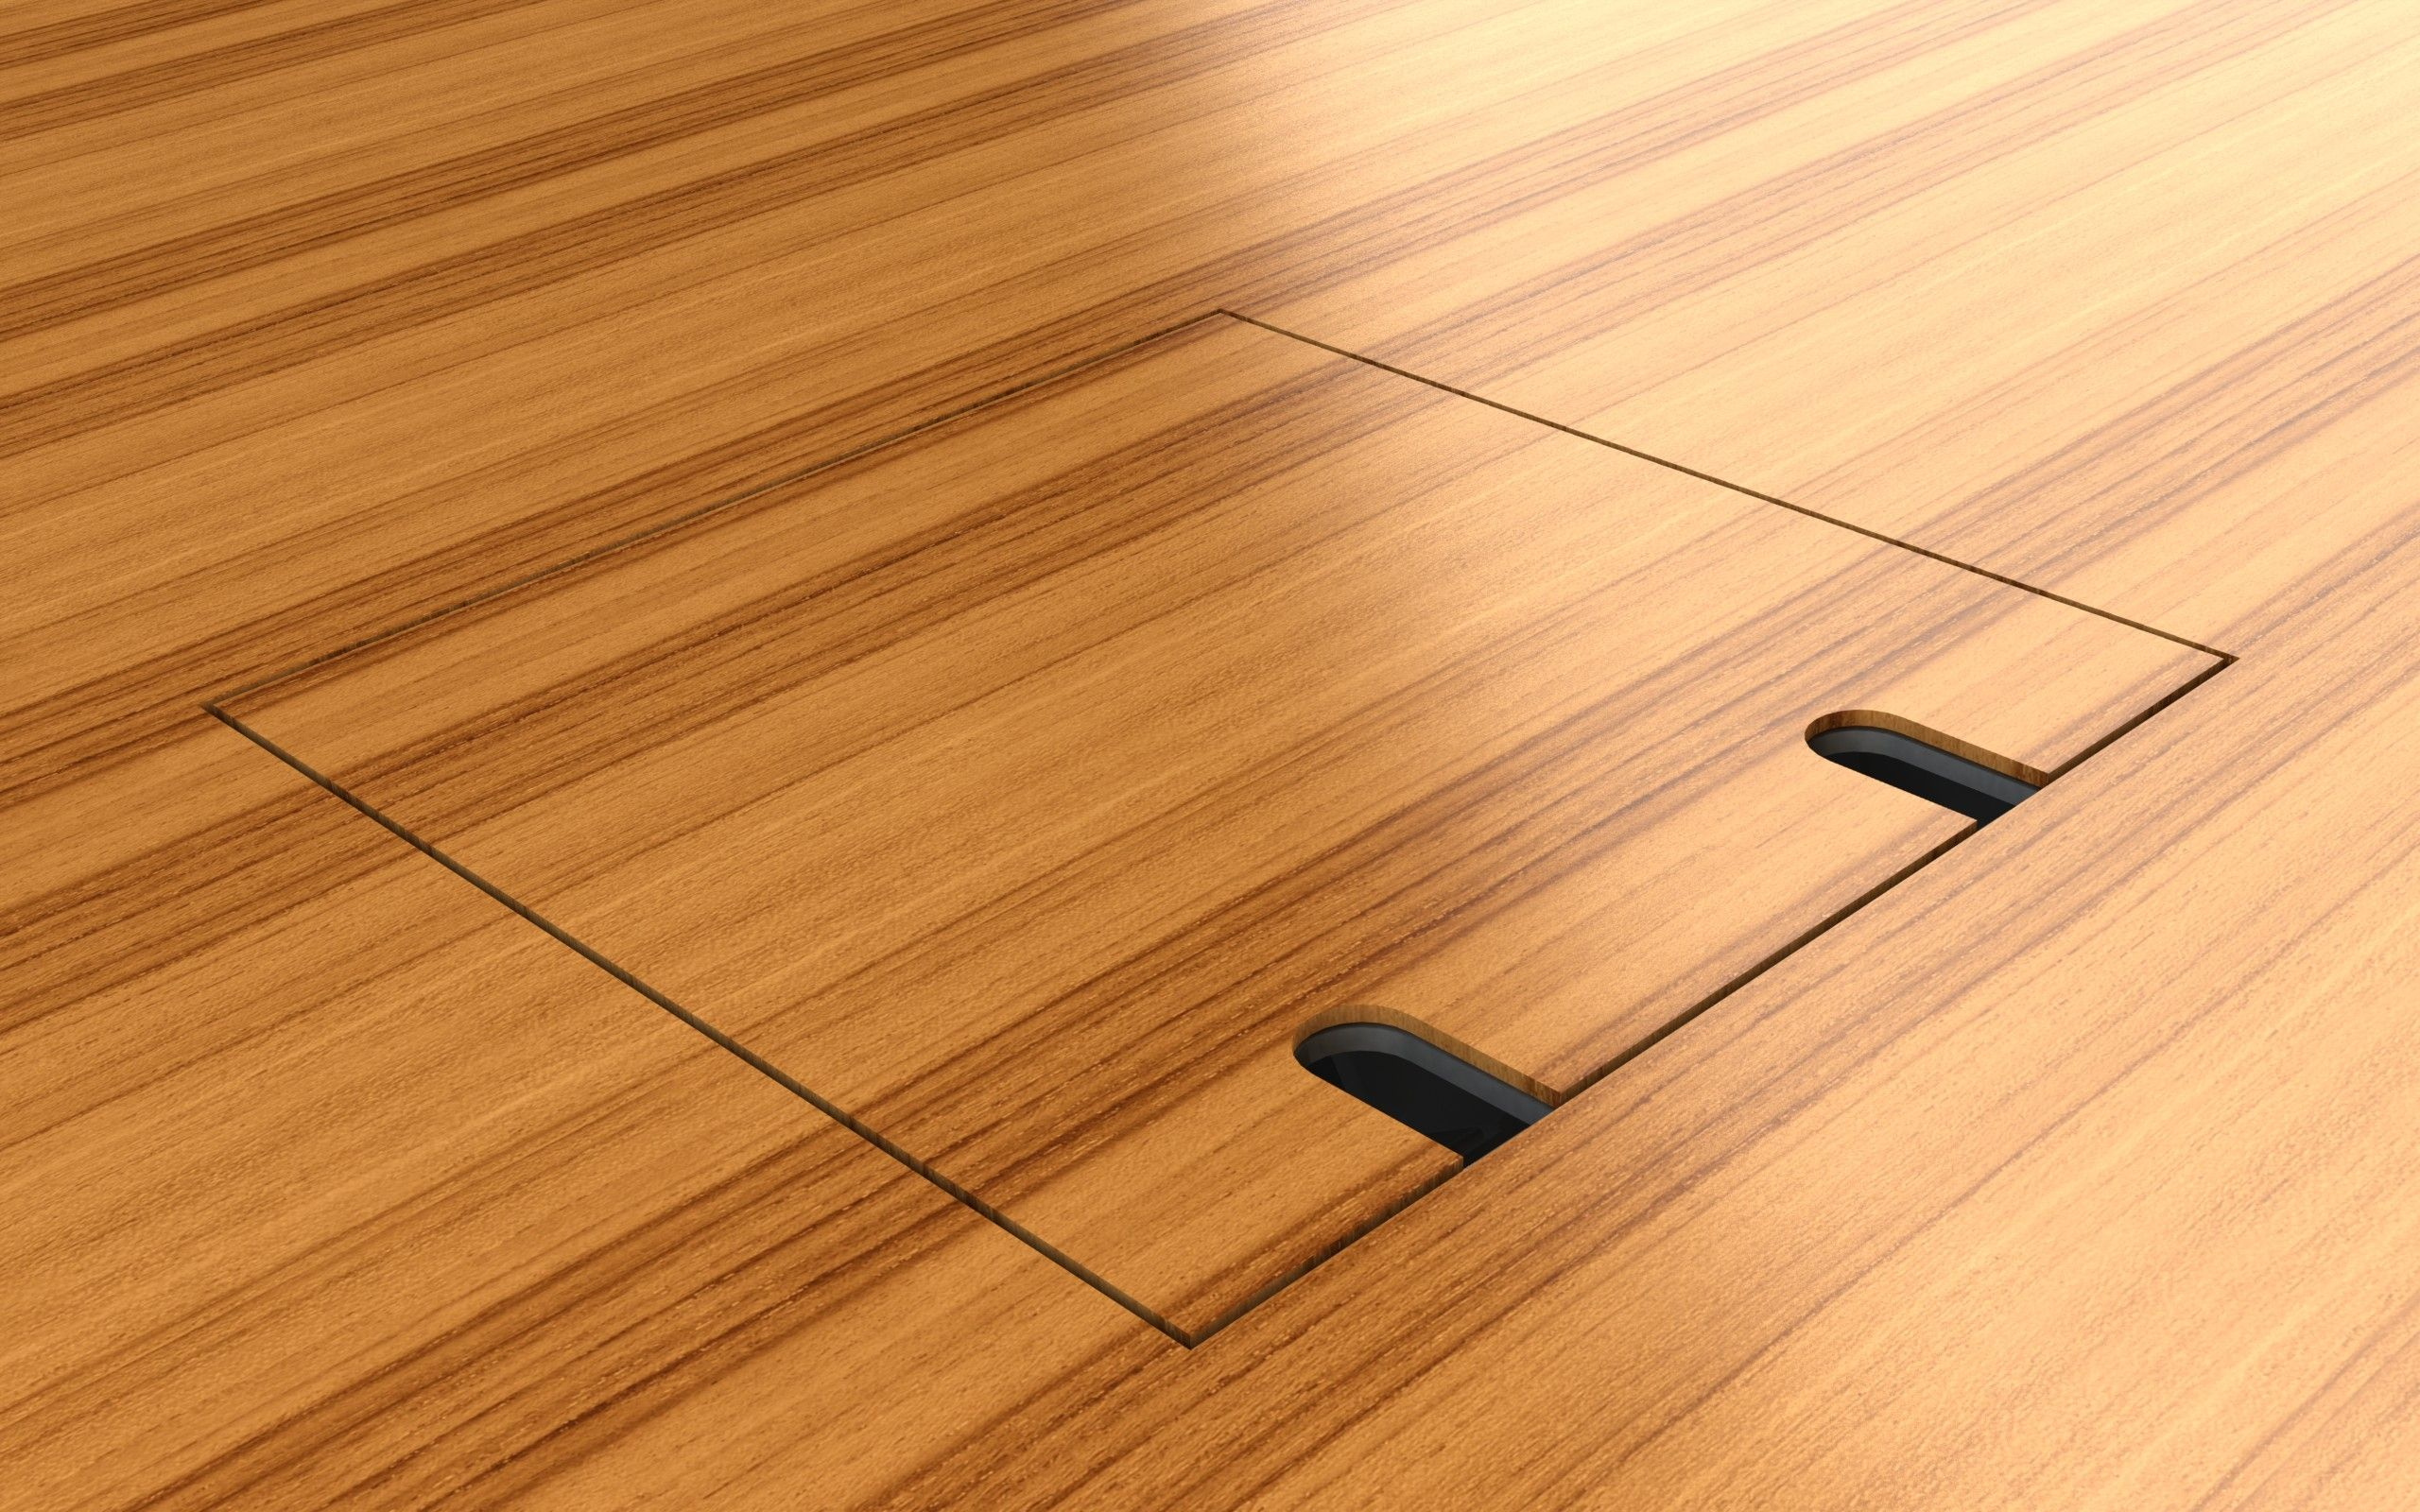 Pin By Ricky On Music Shop Flooring Floor Outlets Wood Floors